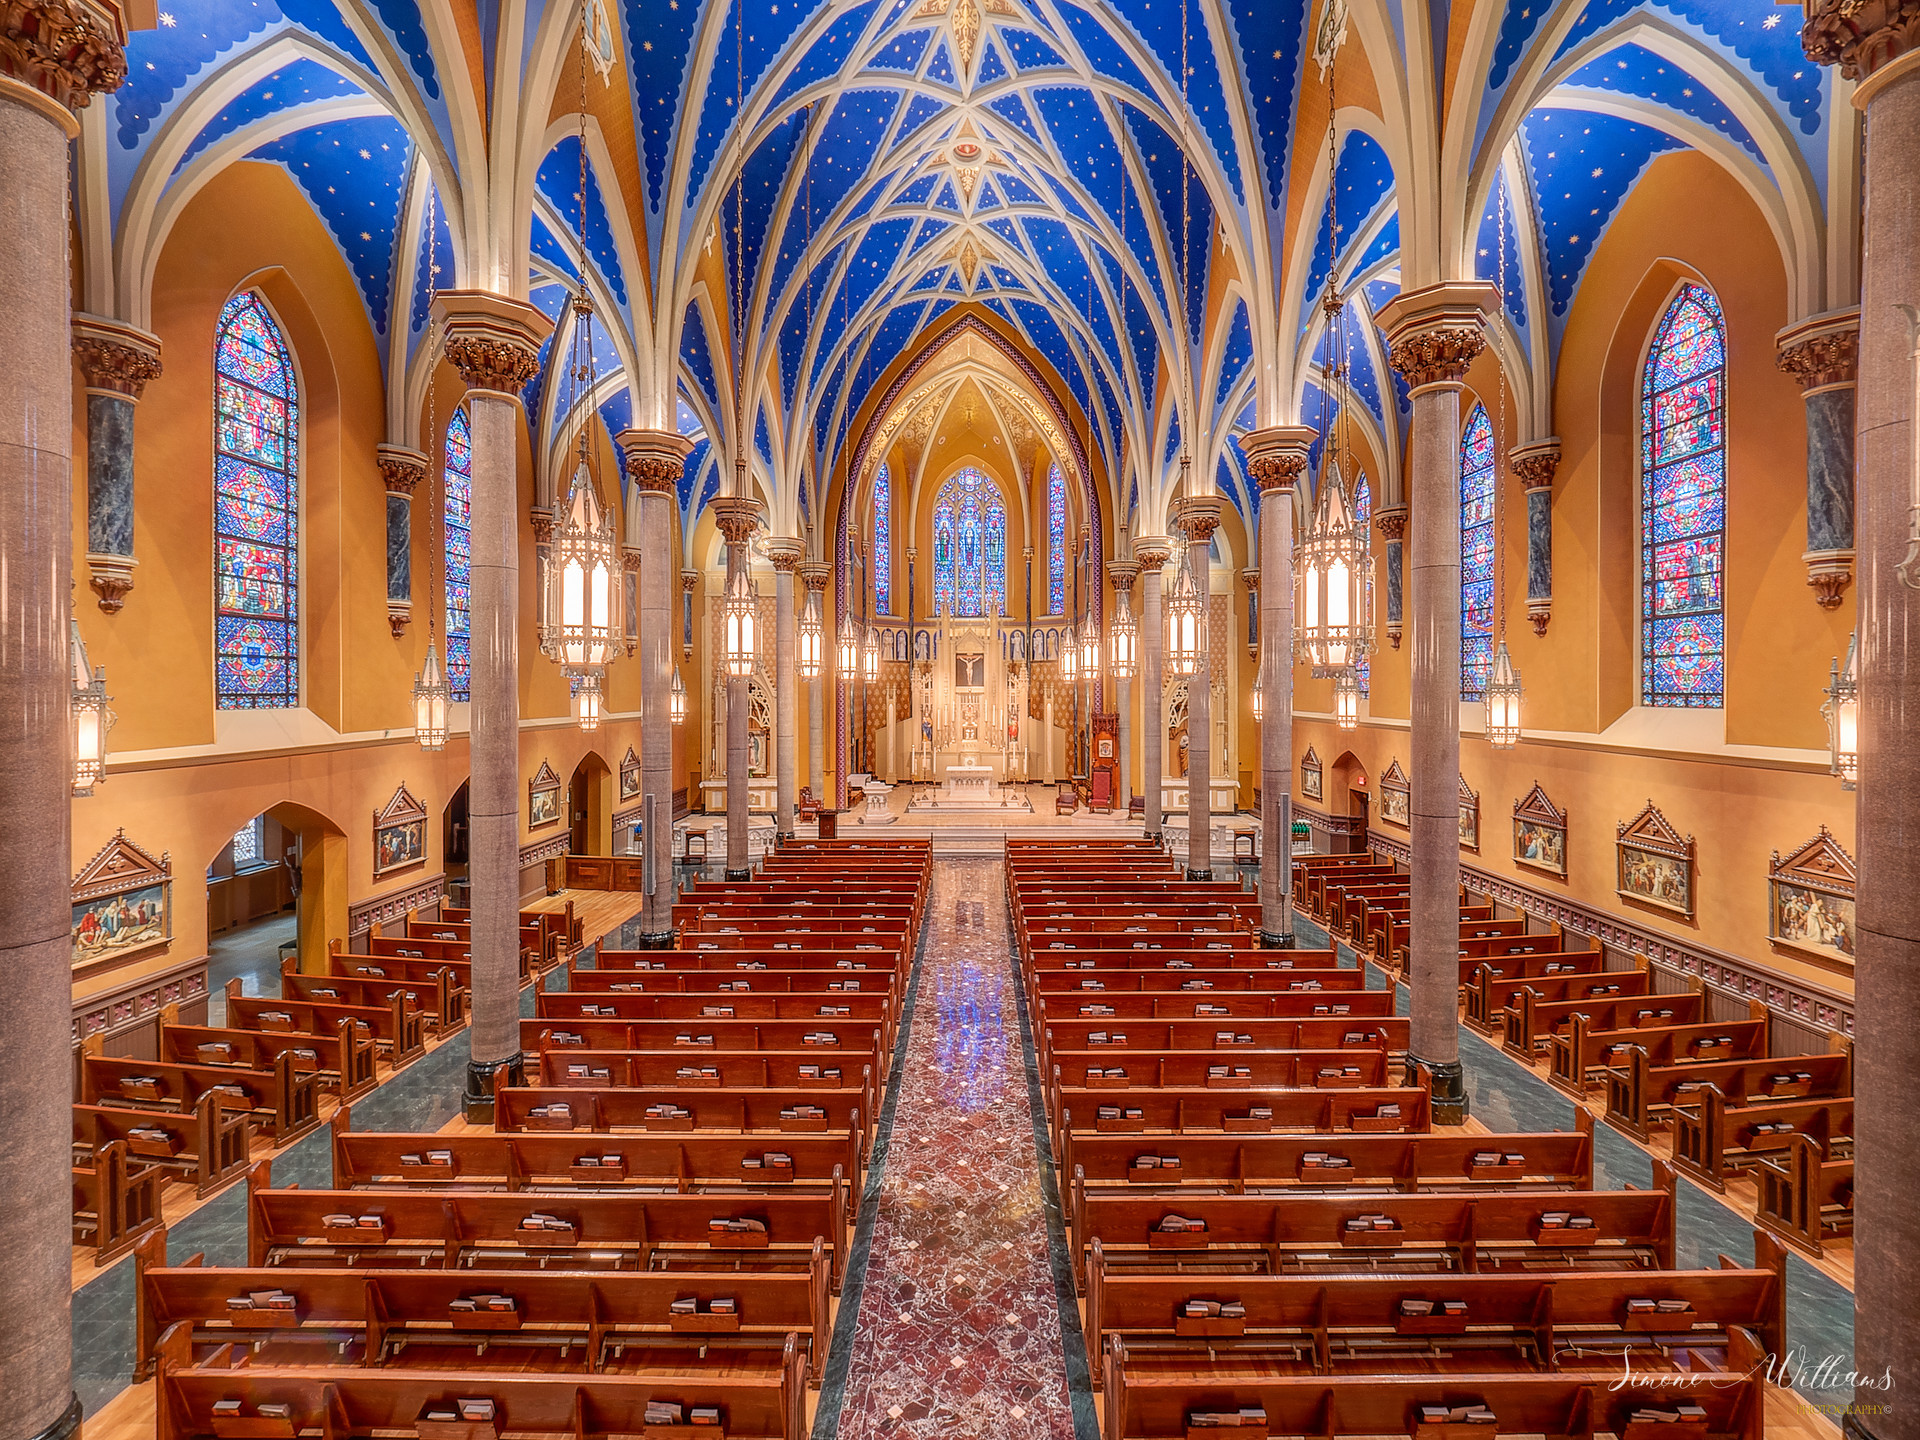 Cathedral of Saint Mary of the Immaculate Conception Peorial IL